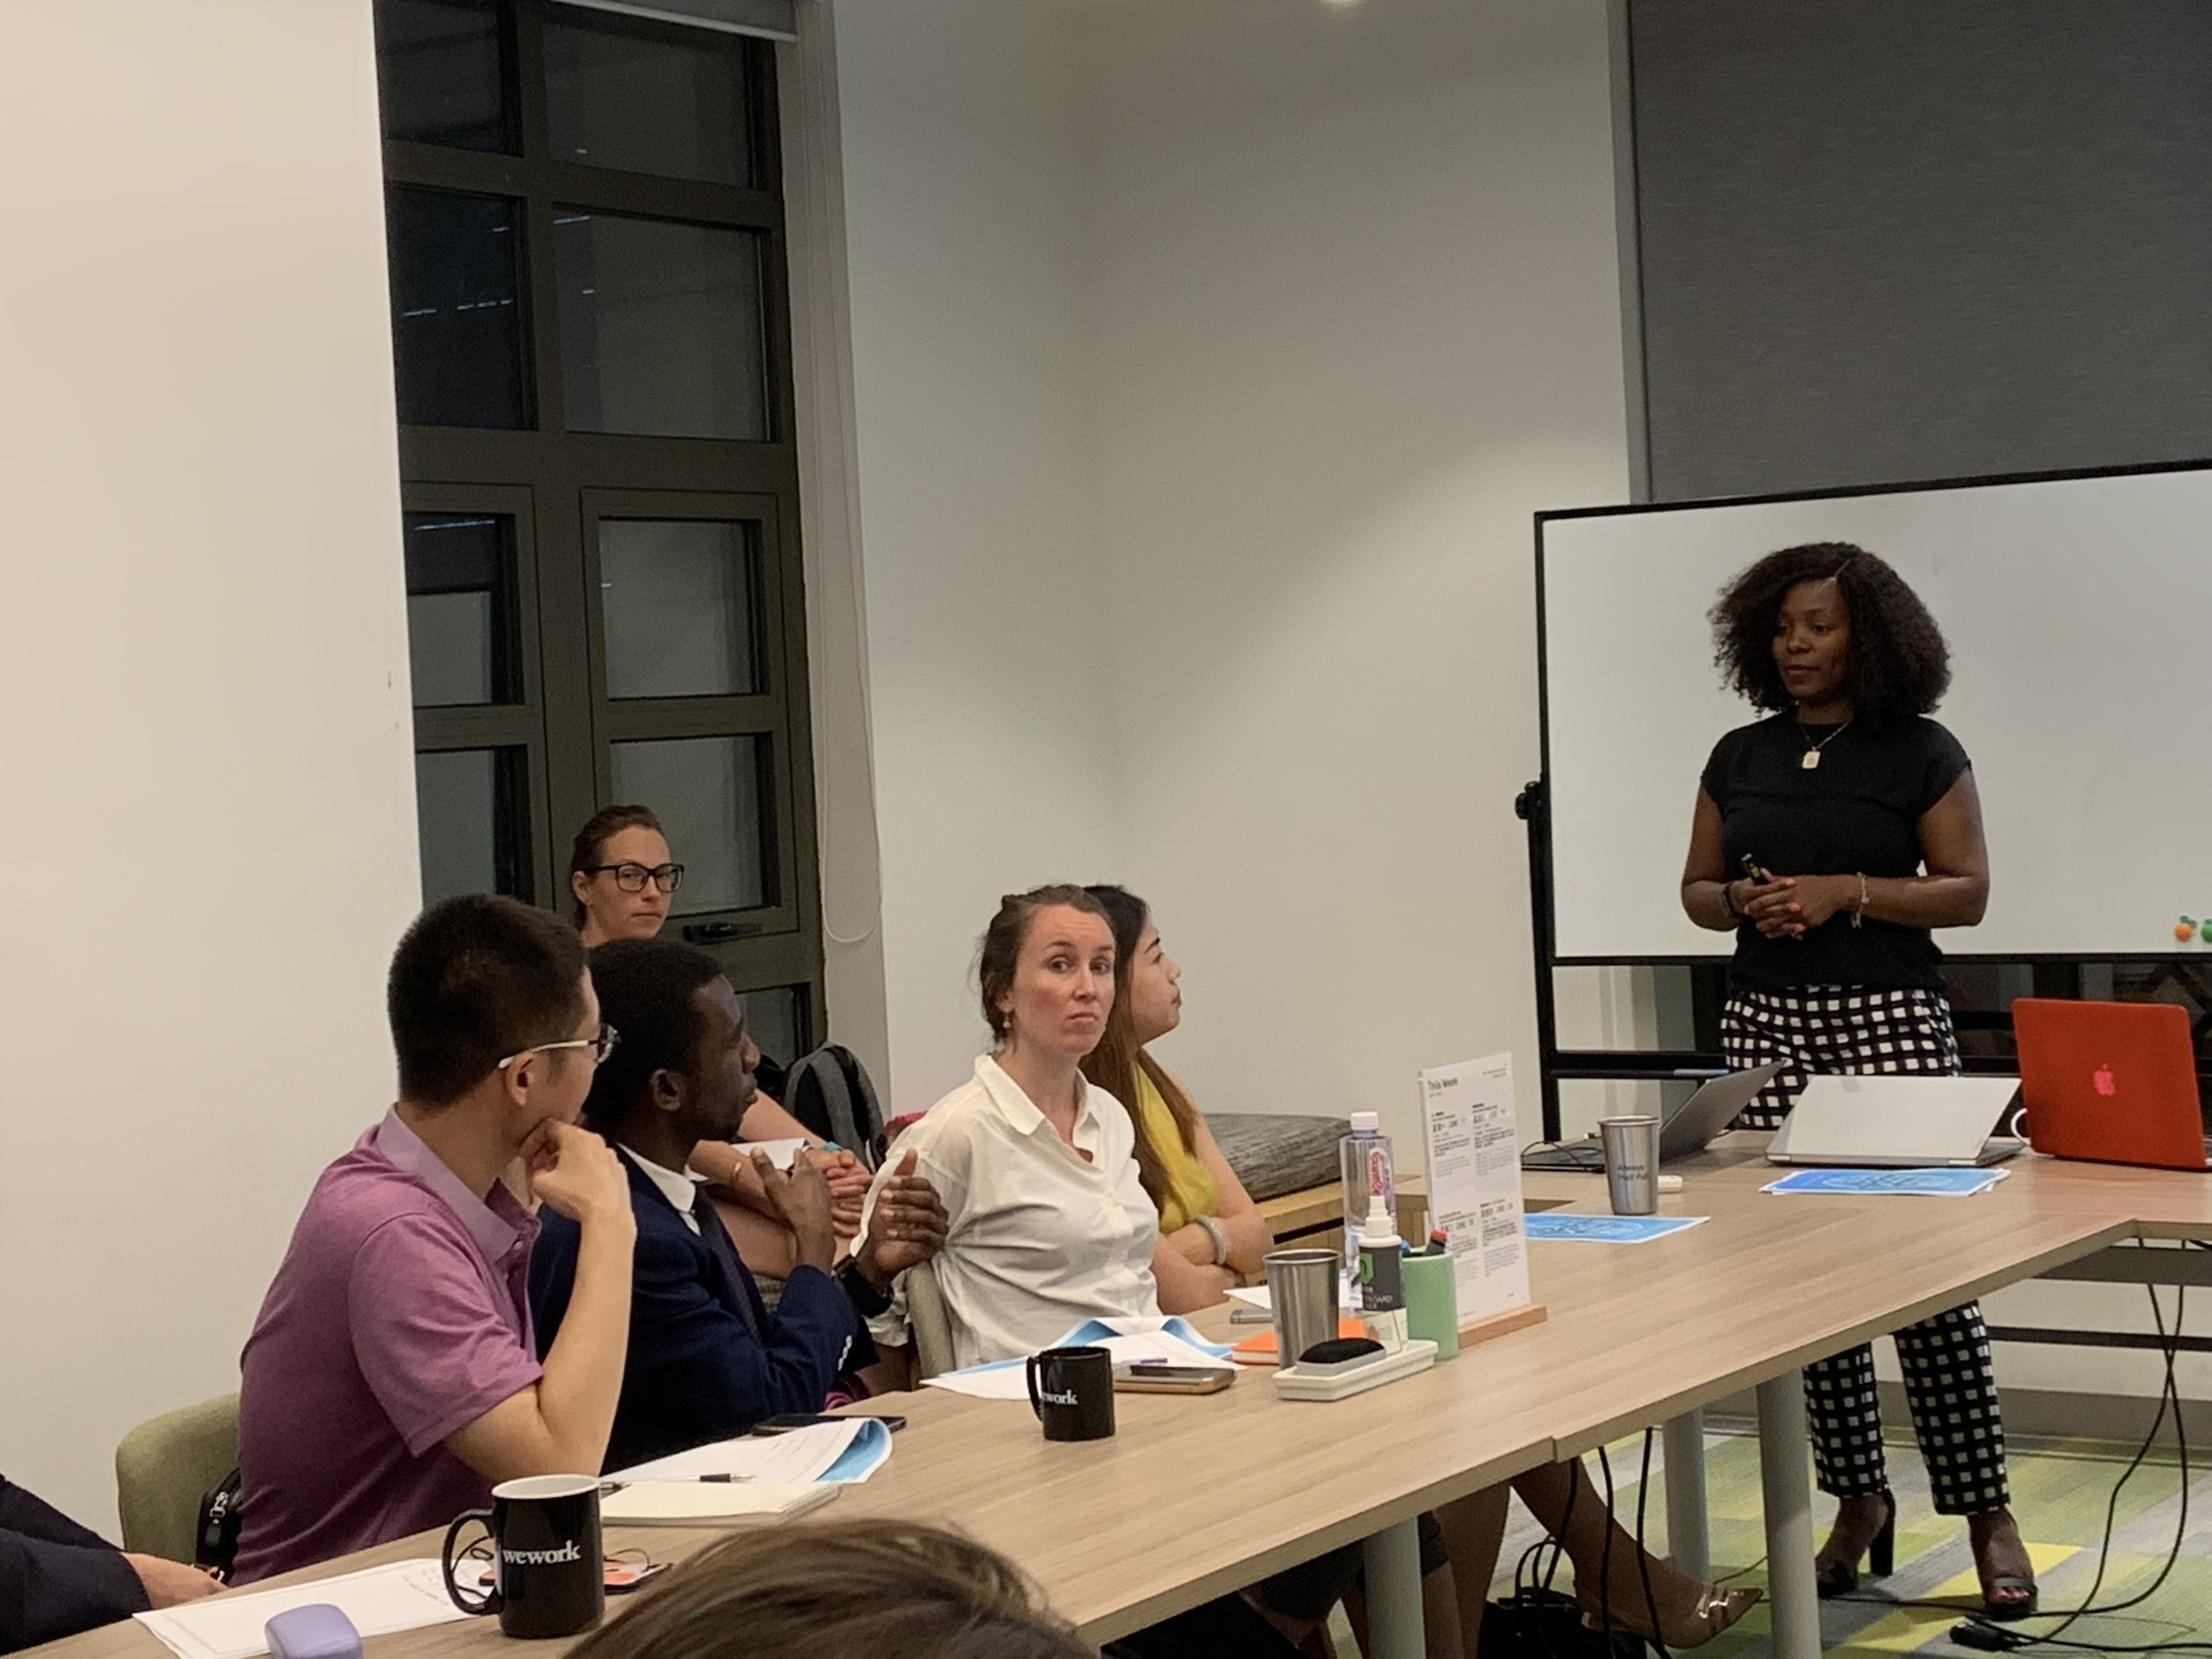 Professional workshop with Bare @ wework - Coping with Professional Anxiety